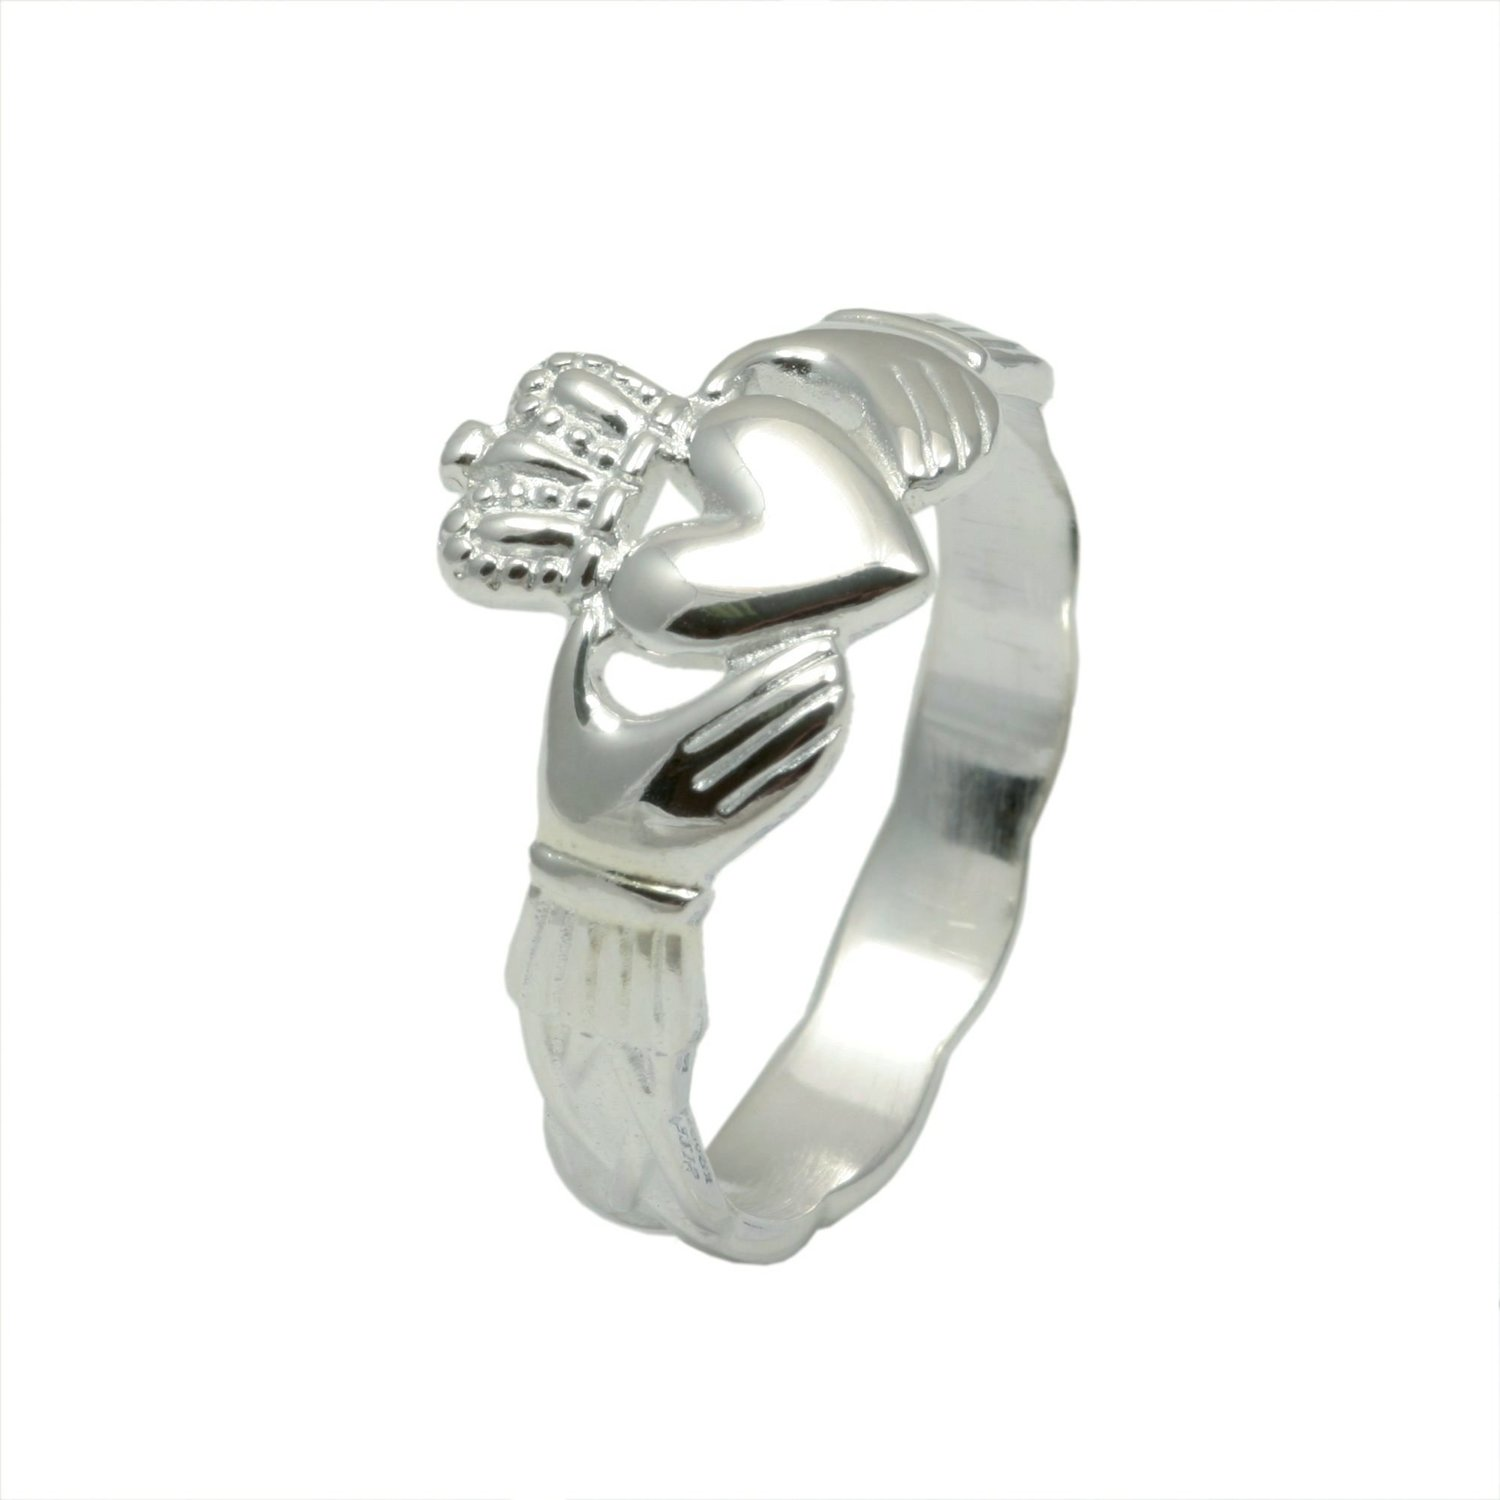 irish drawing at for use rings claddagh gaelic ring amazoncom friendship personal getdrawings com free nickel engagement